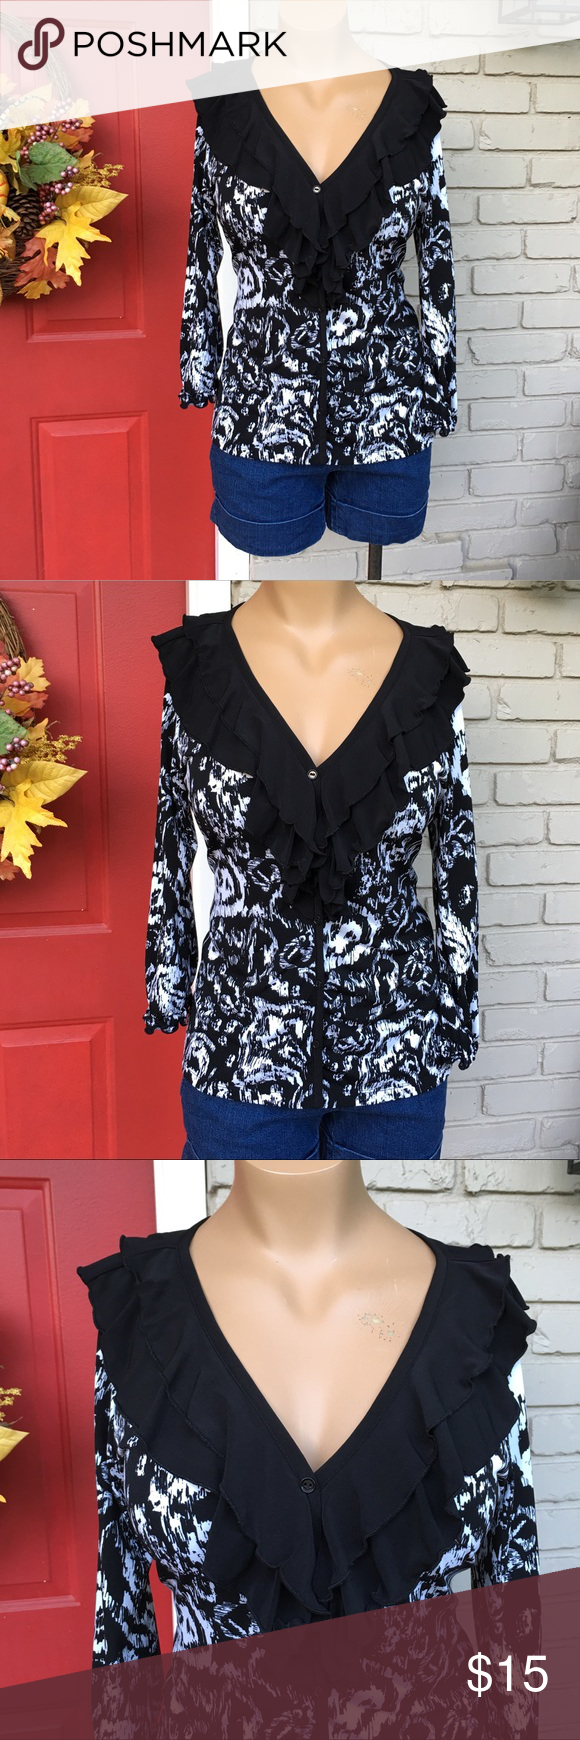 Black white stretch ruffle neck button up top Sexy but sweet black white ikat (?) print button up with large ruffle neckline. Stretchy. 3/4 sleeve. J.T.B. Tops